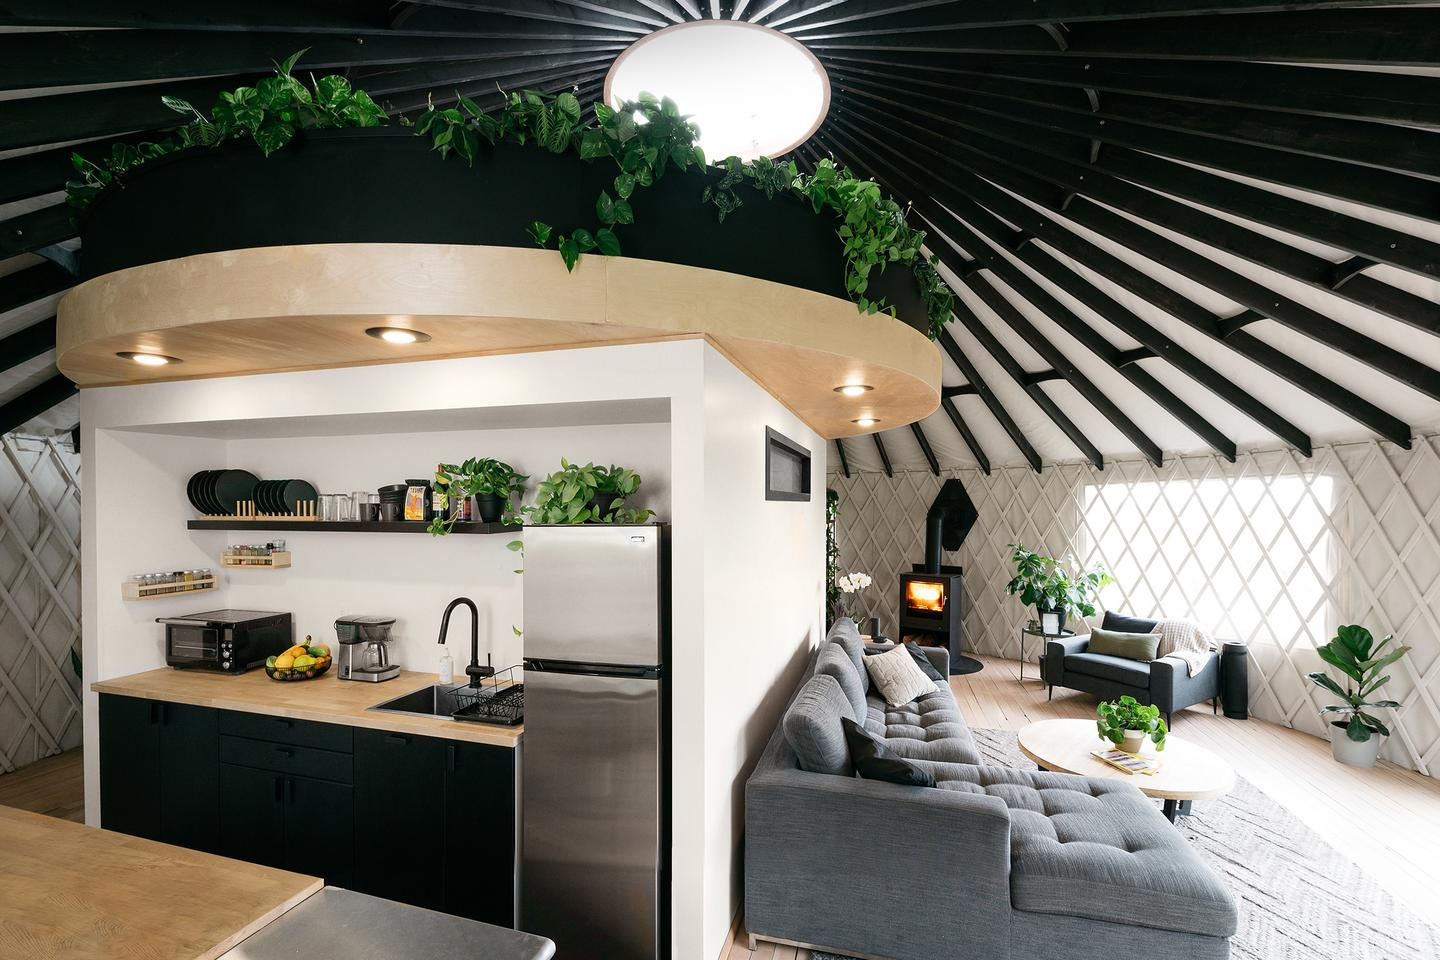 Oregon Couple Build Stunning Botanical Yurt Share Diy Guide Online Find out how to build on a budget and discover yurt. oregon couple build stunning botanical